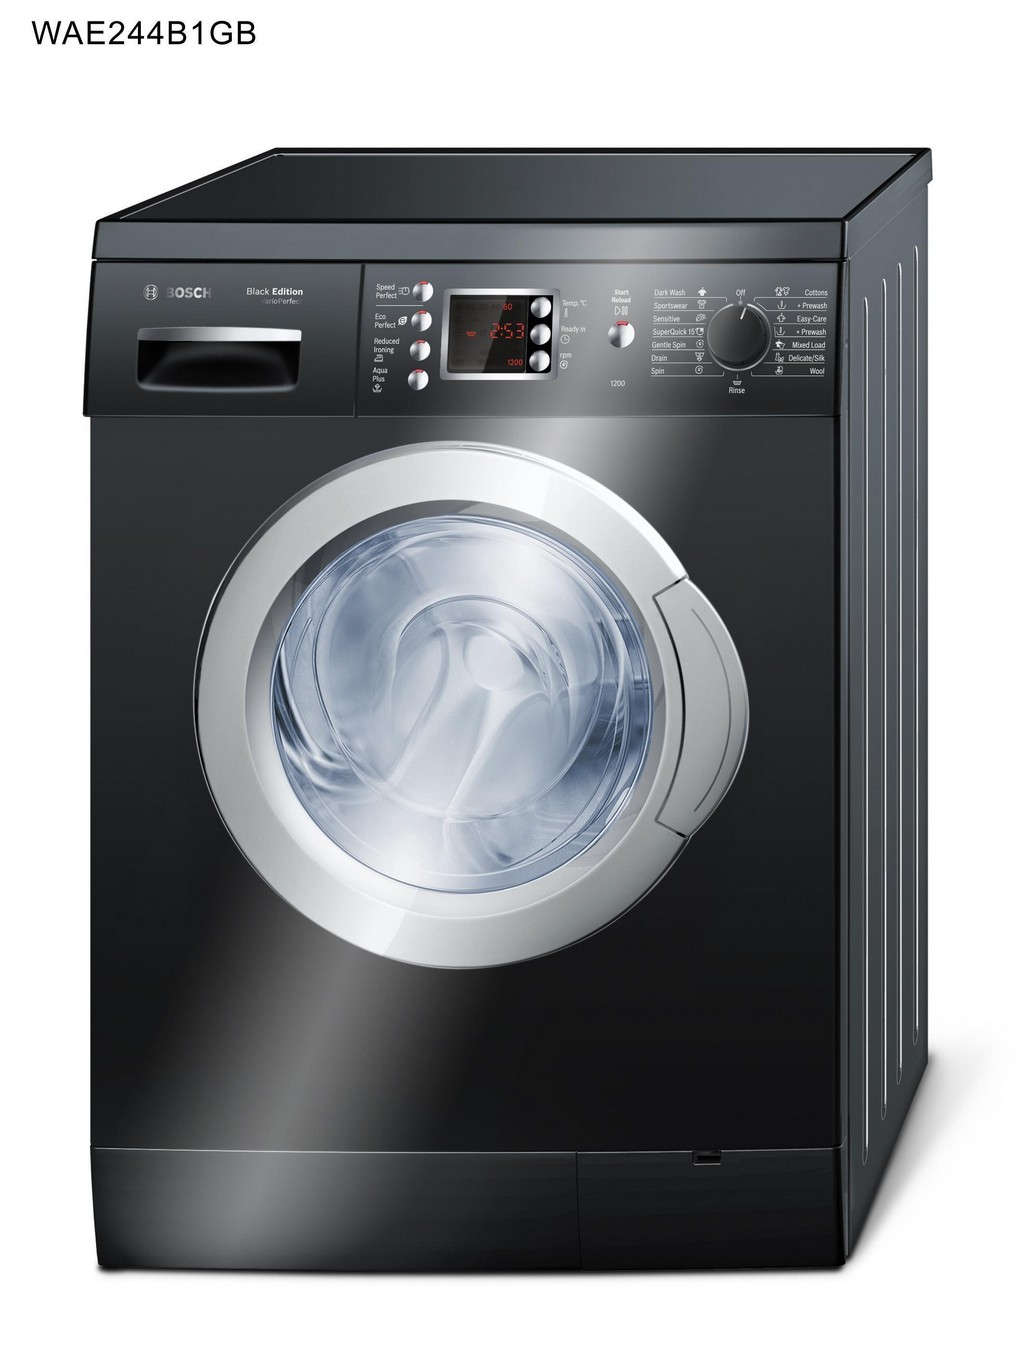 bosch washing machine, samsung washer, cheapest washing machine